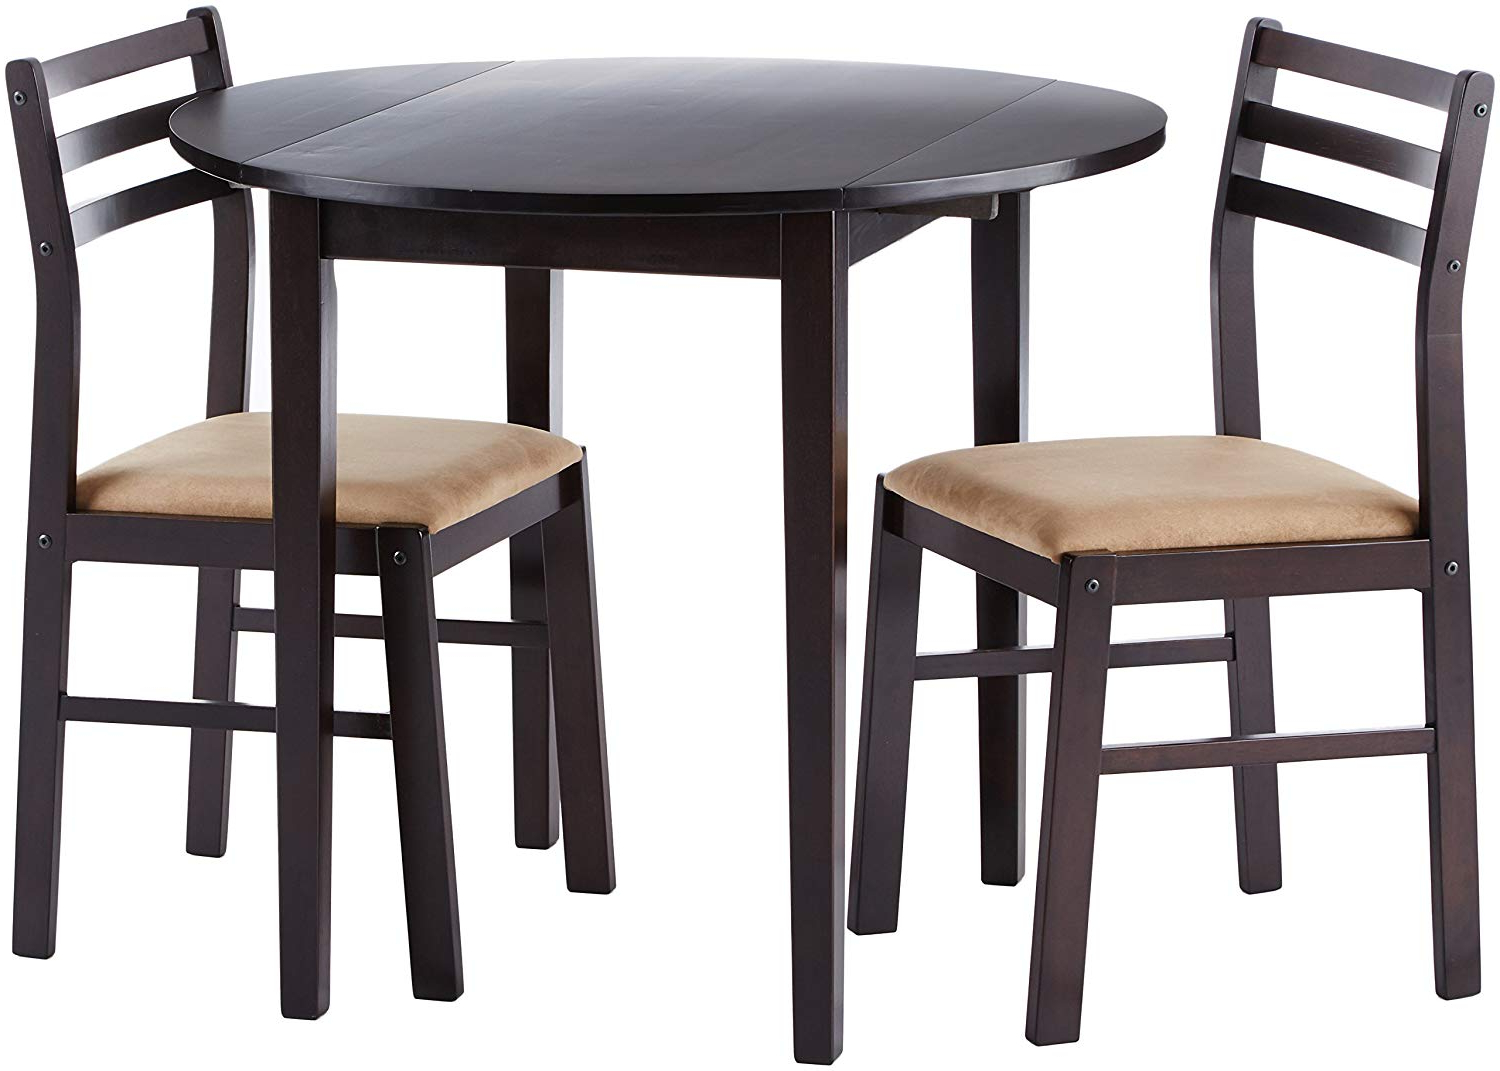 Most Up To Date Cincinnati 3 Piece Dining Sets Within Amazon – Coaster Home Furnishings 3 Piece Dining Set With Drop (View 18 of 25)